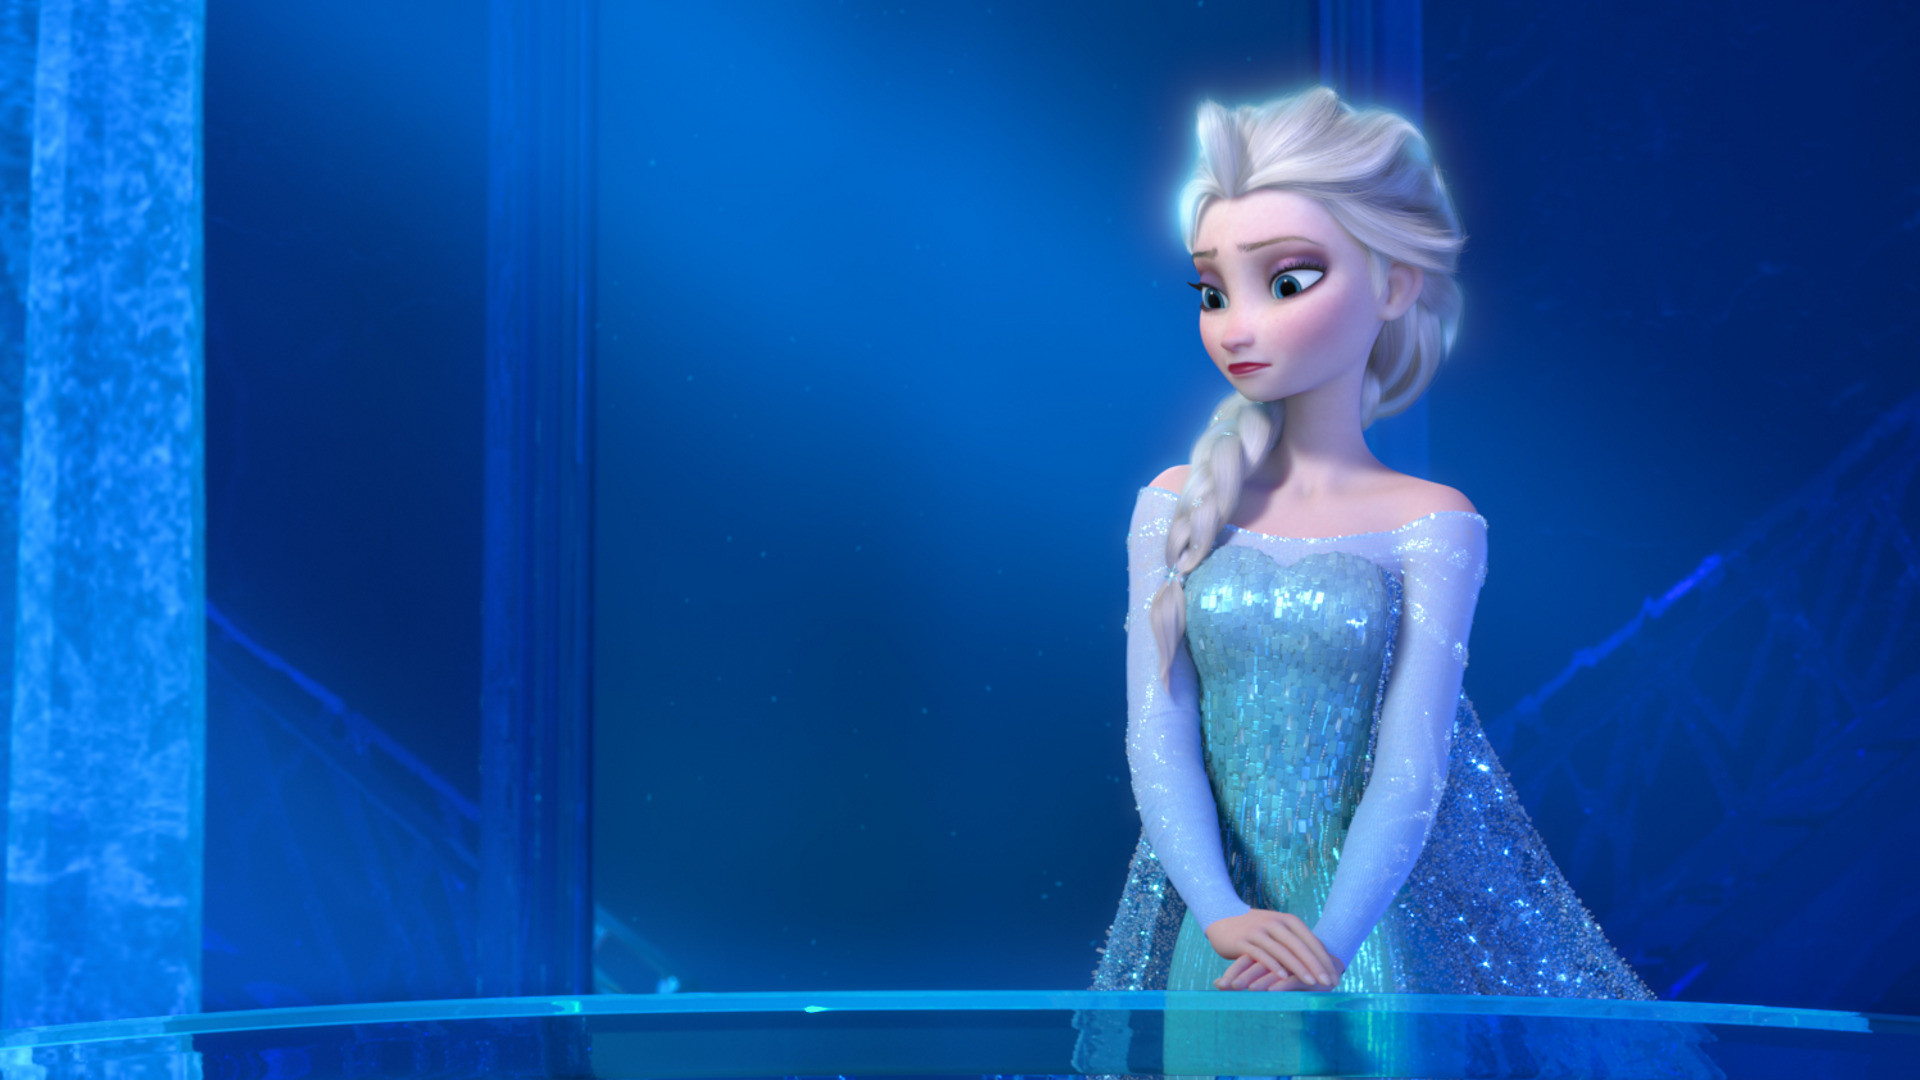 Elsa Wallpapers 78 Images HD Wallpapers Download Free Images Wallpaper [1000image.com]